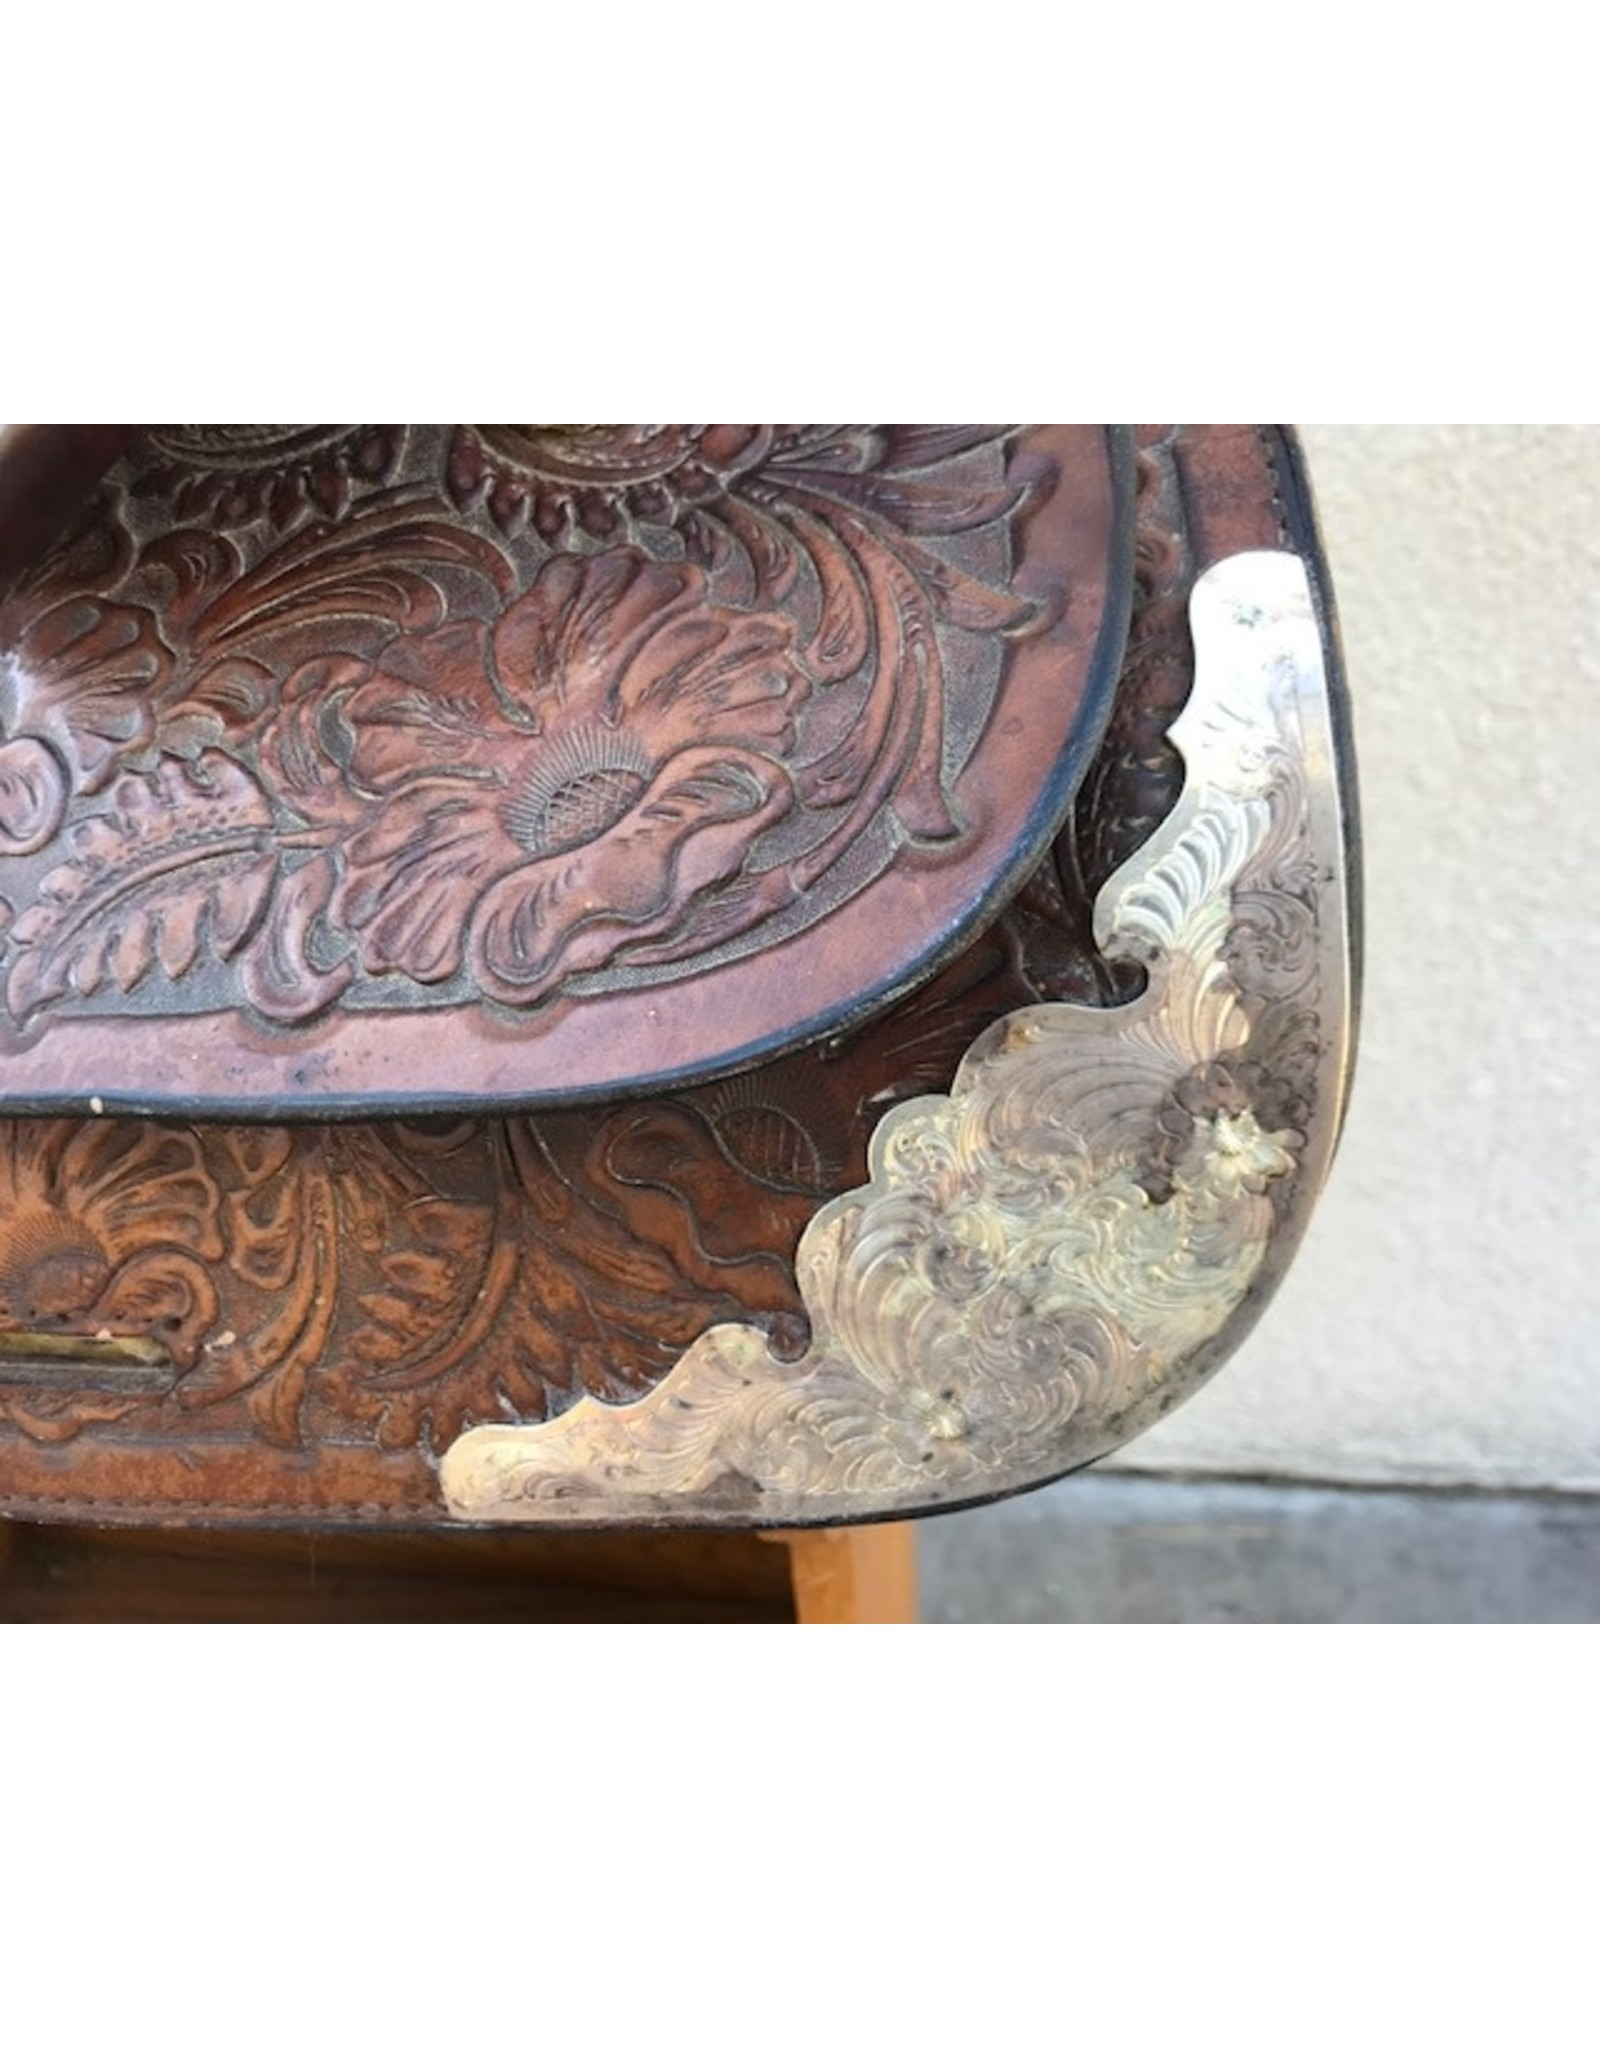 TexTan Saddle with silver & breastcollar